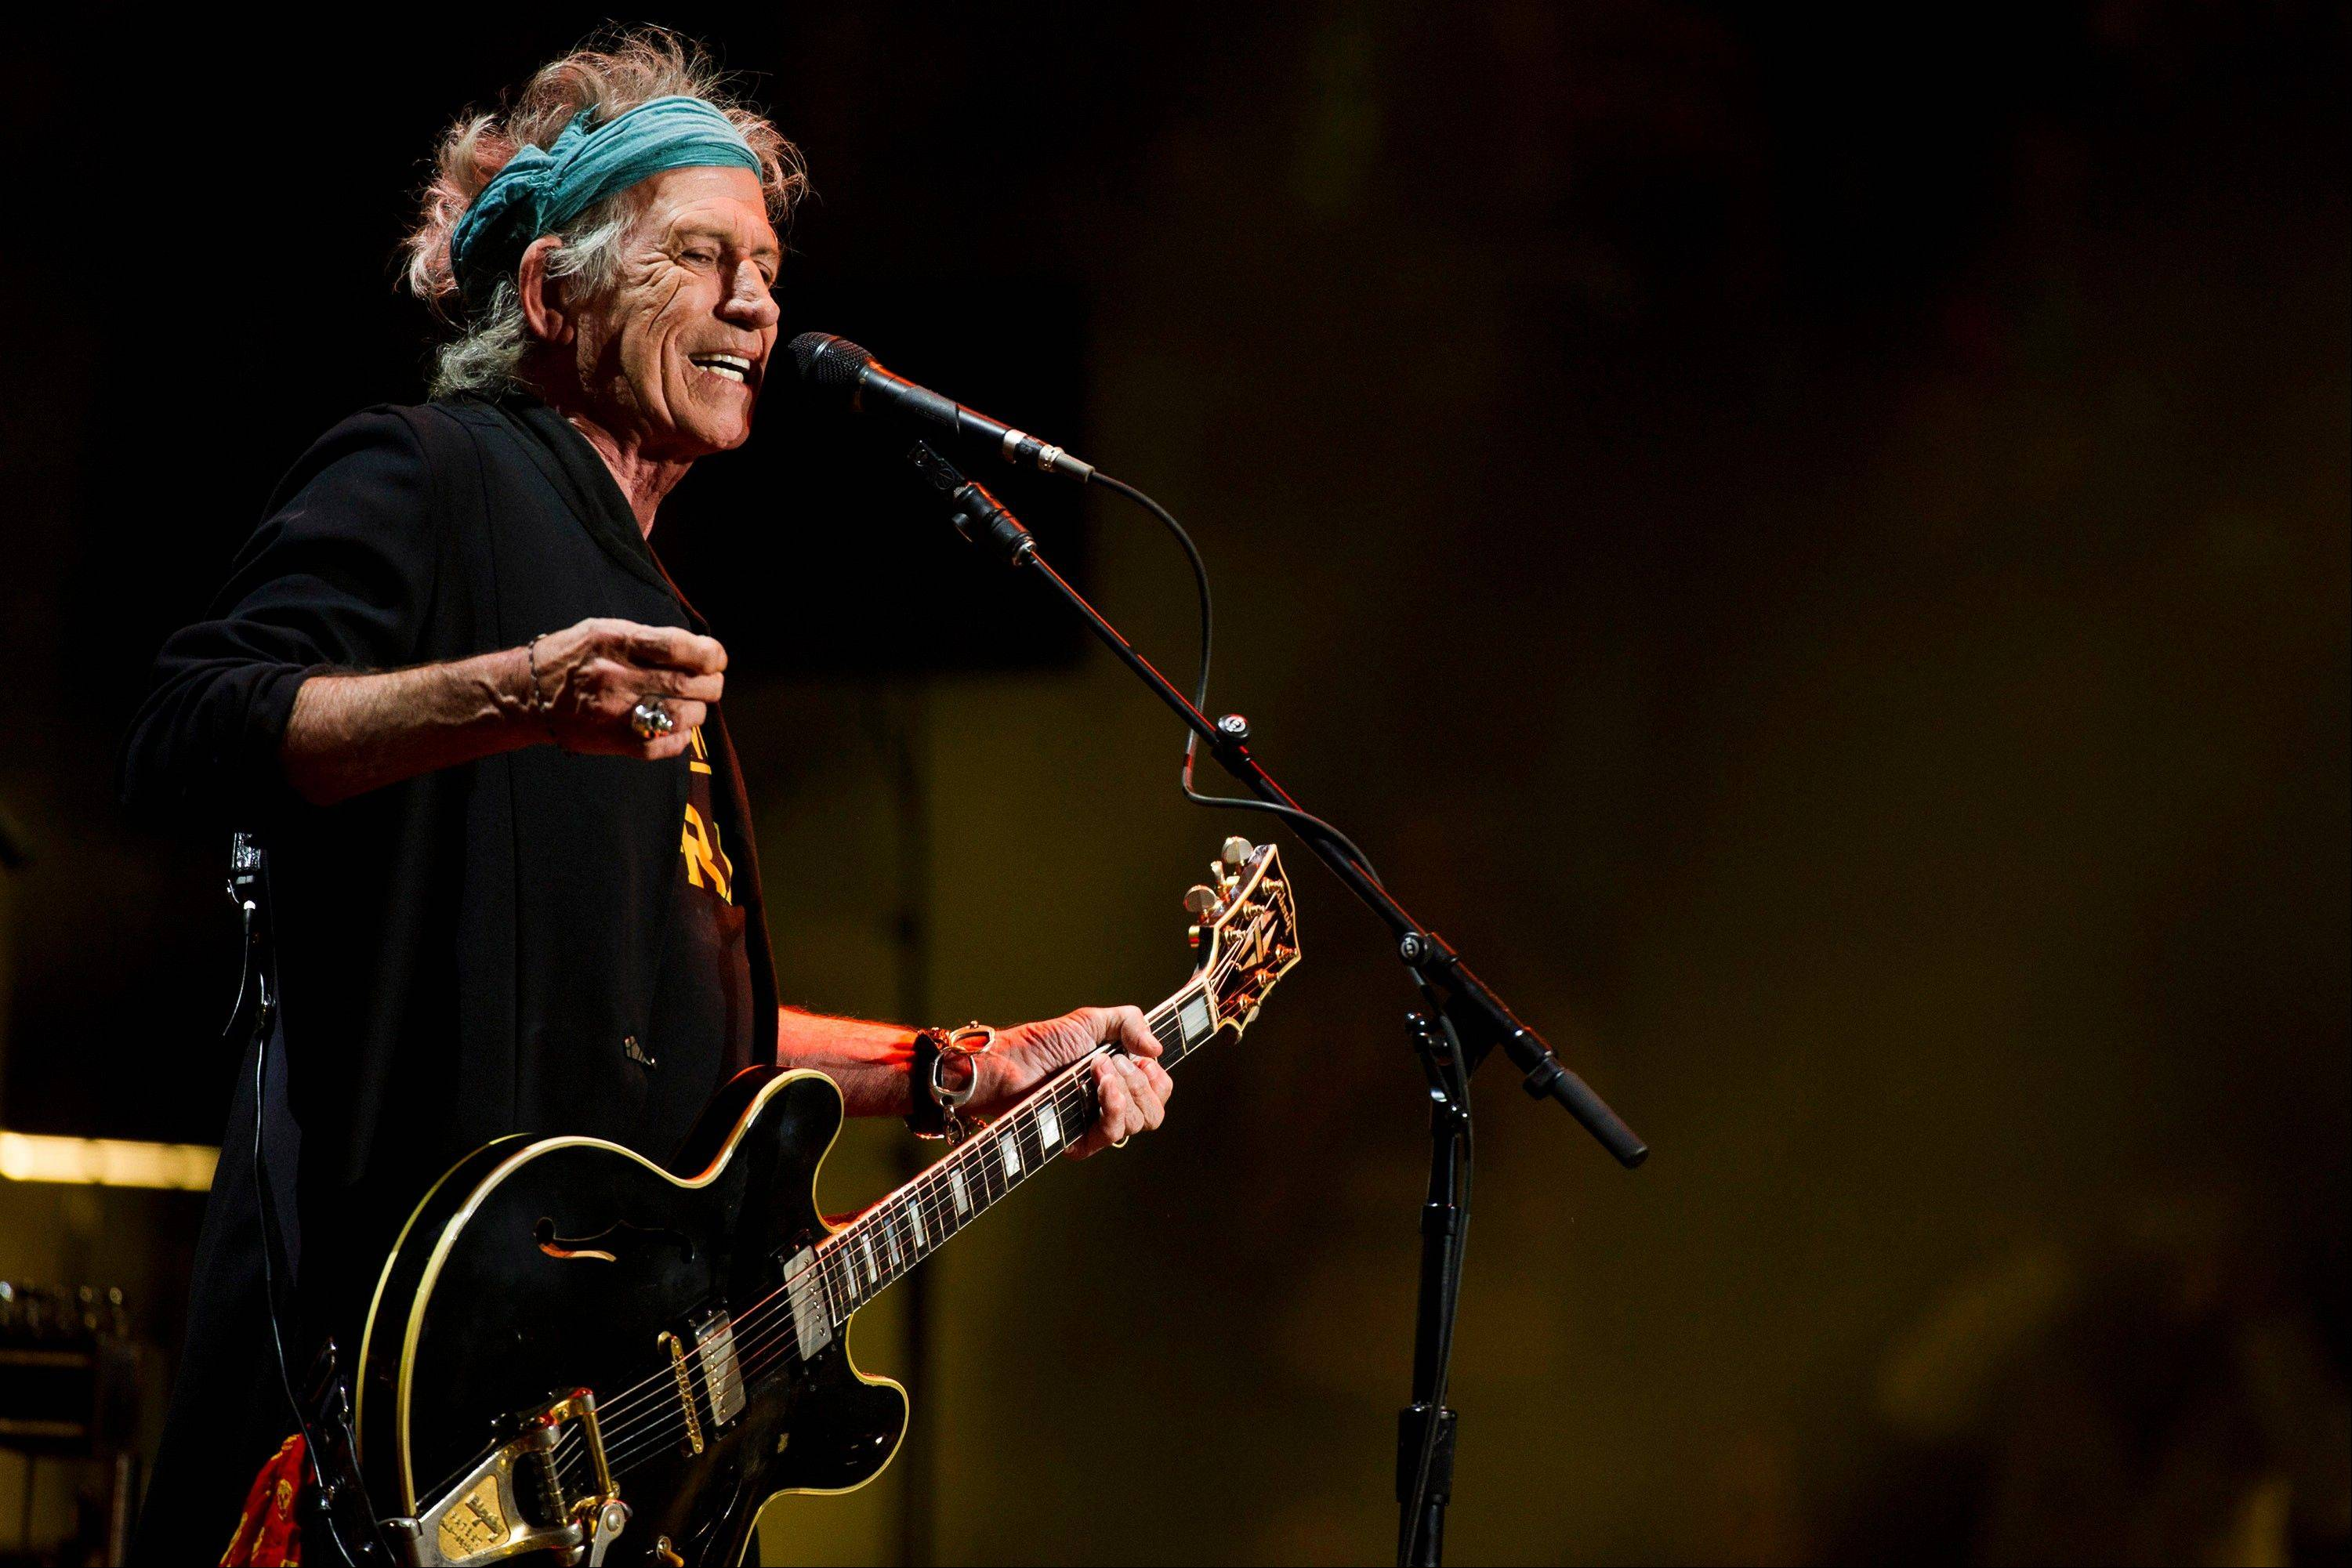 Keith Richards performs at Eric Clapton's Crossroads Guitar Festival 2013 at Madison Square Garden on Saturday.